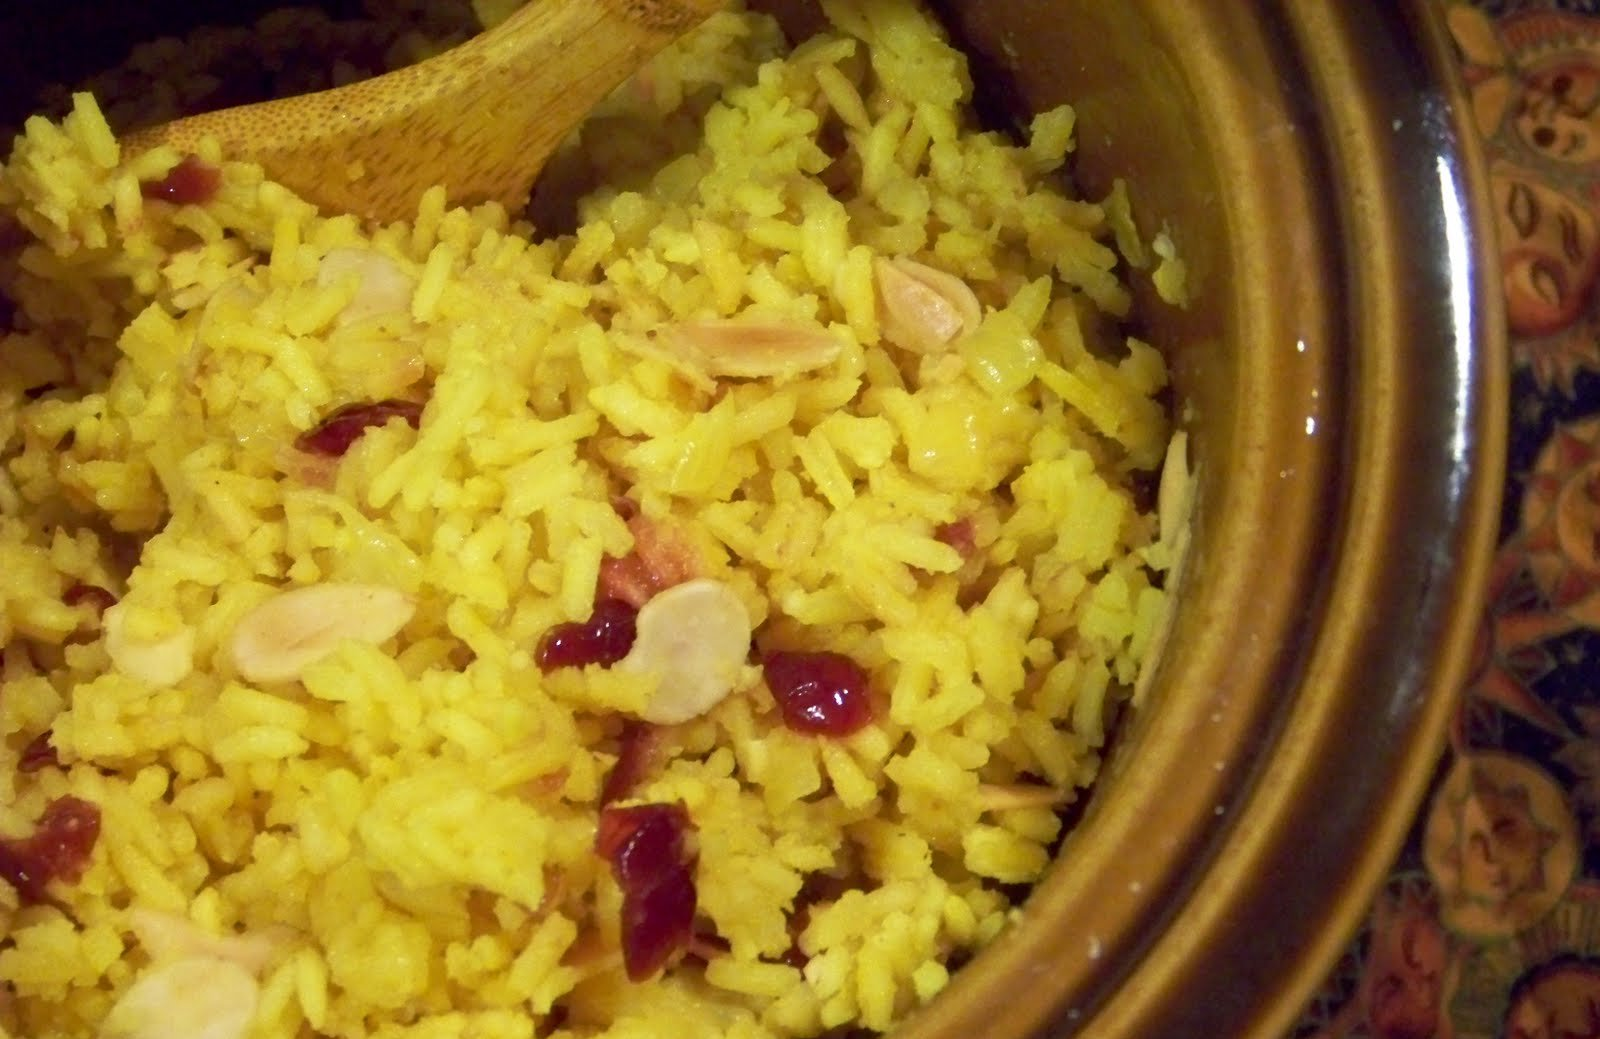 A Slowcooked Rice Dish Is A Little Different From Other Slow Cooker Recipes  You May Have